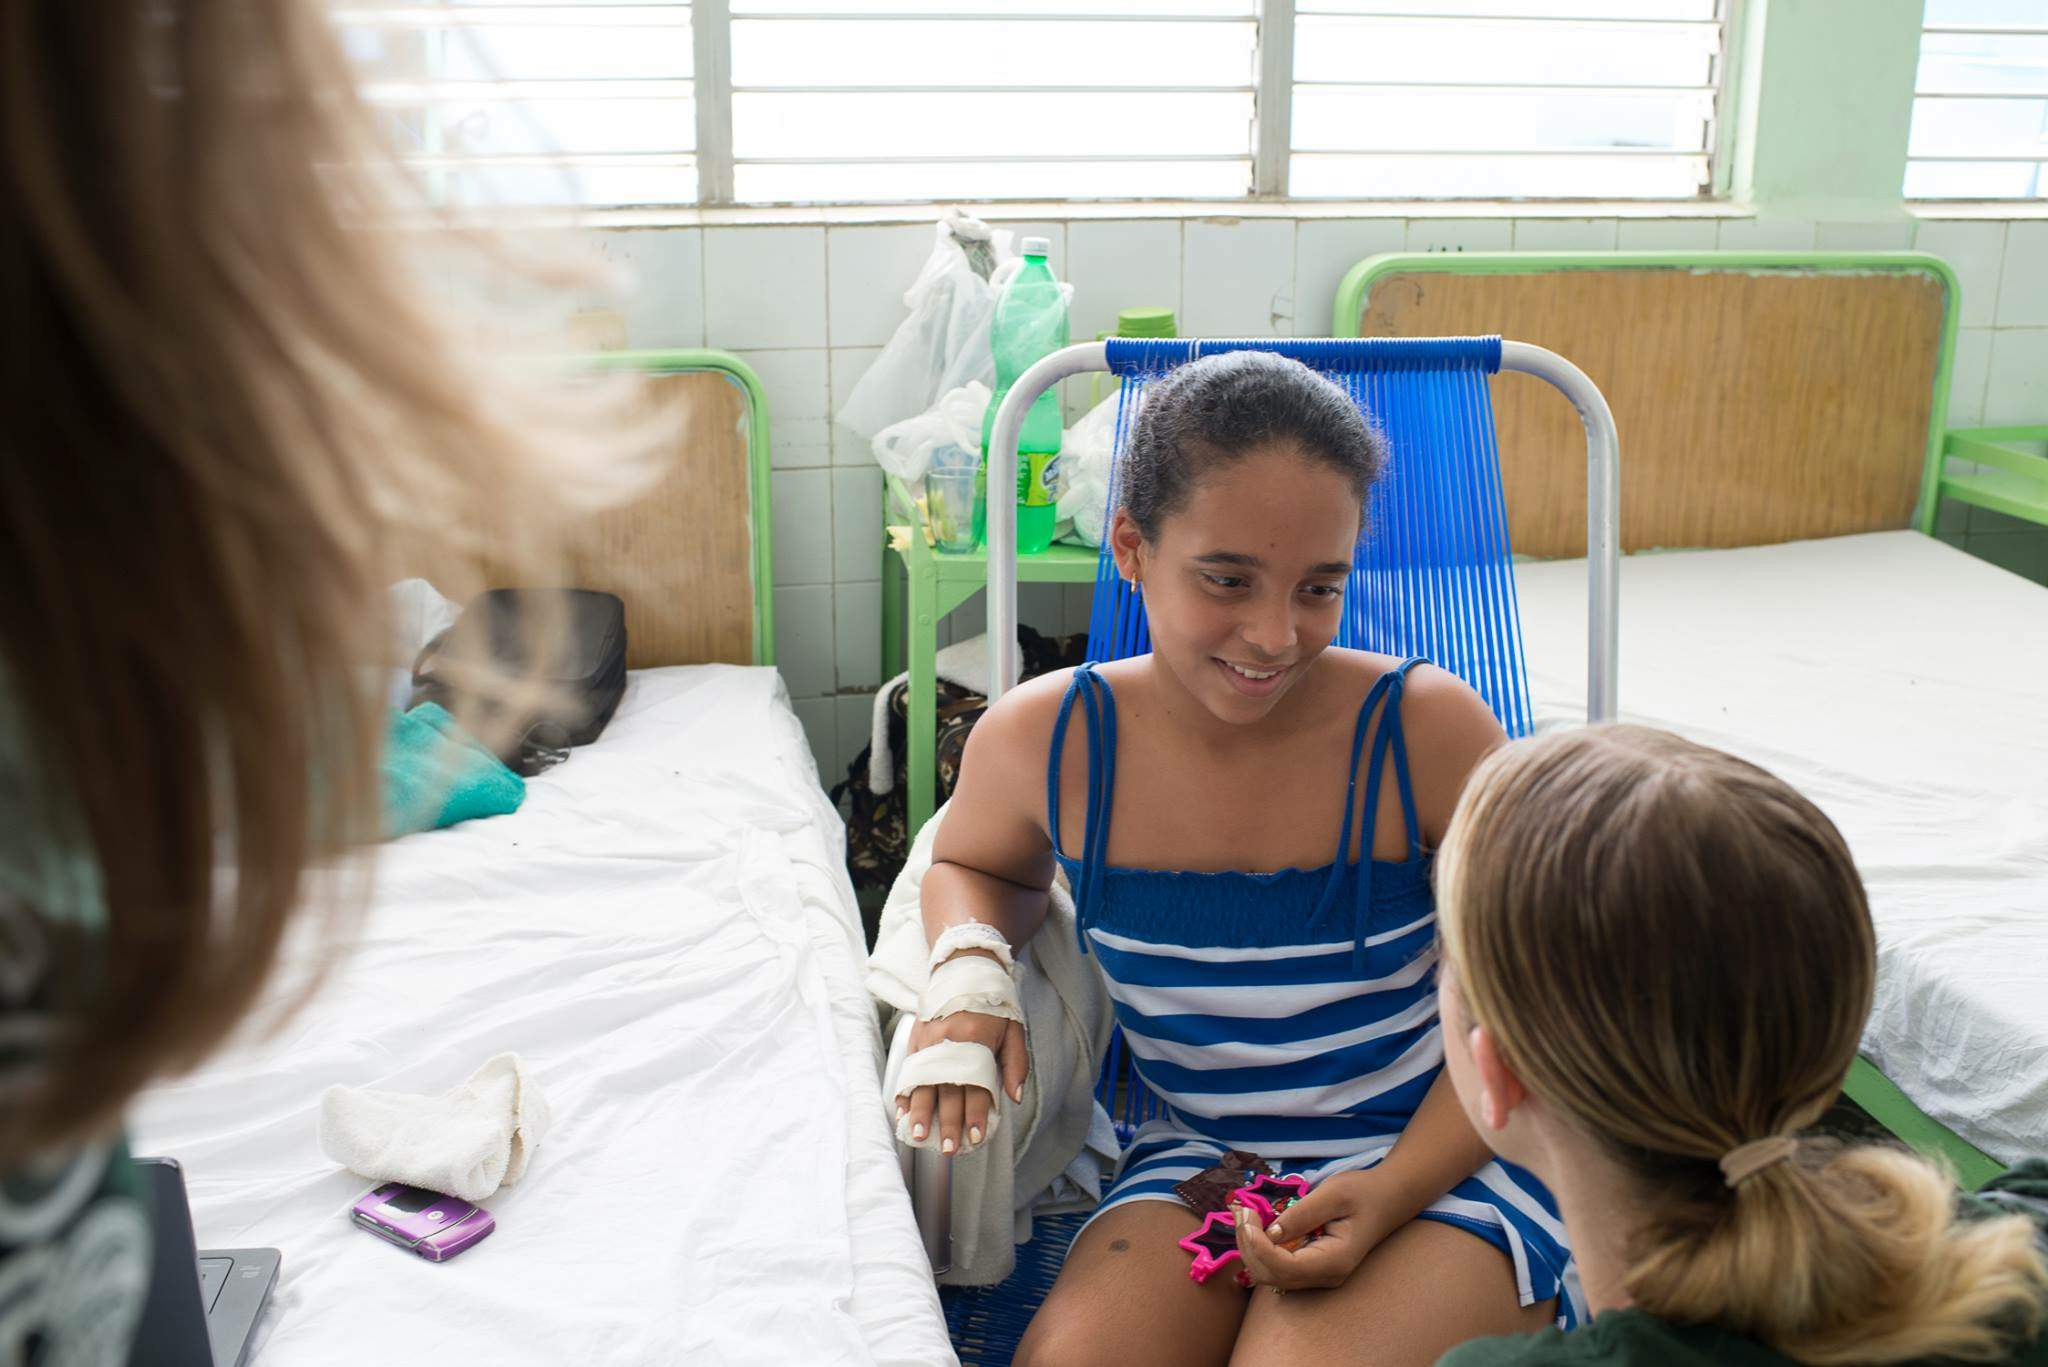 One of our great volunteers helping out in the Pediatric Ward in Havana.